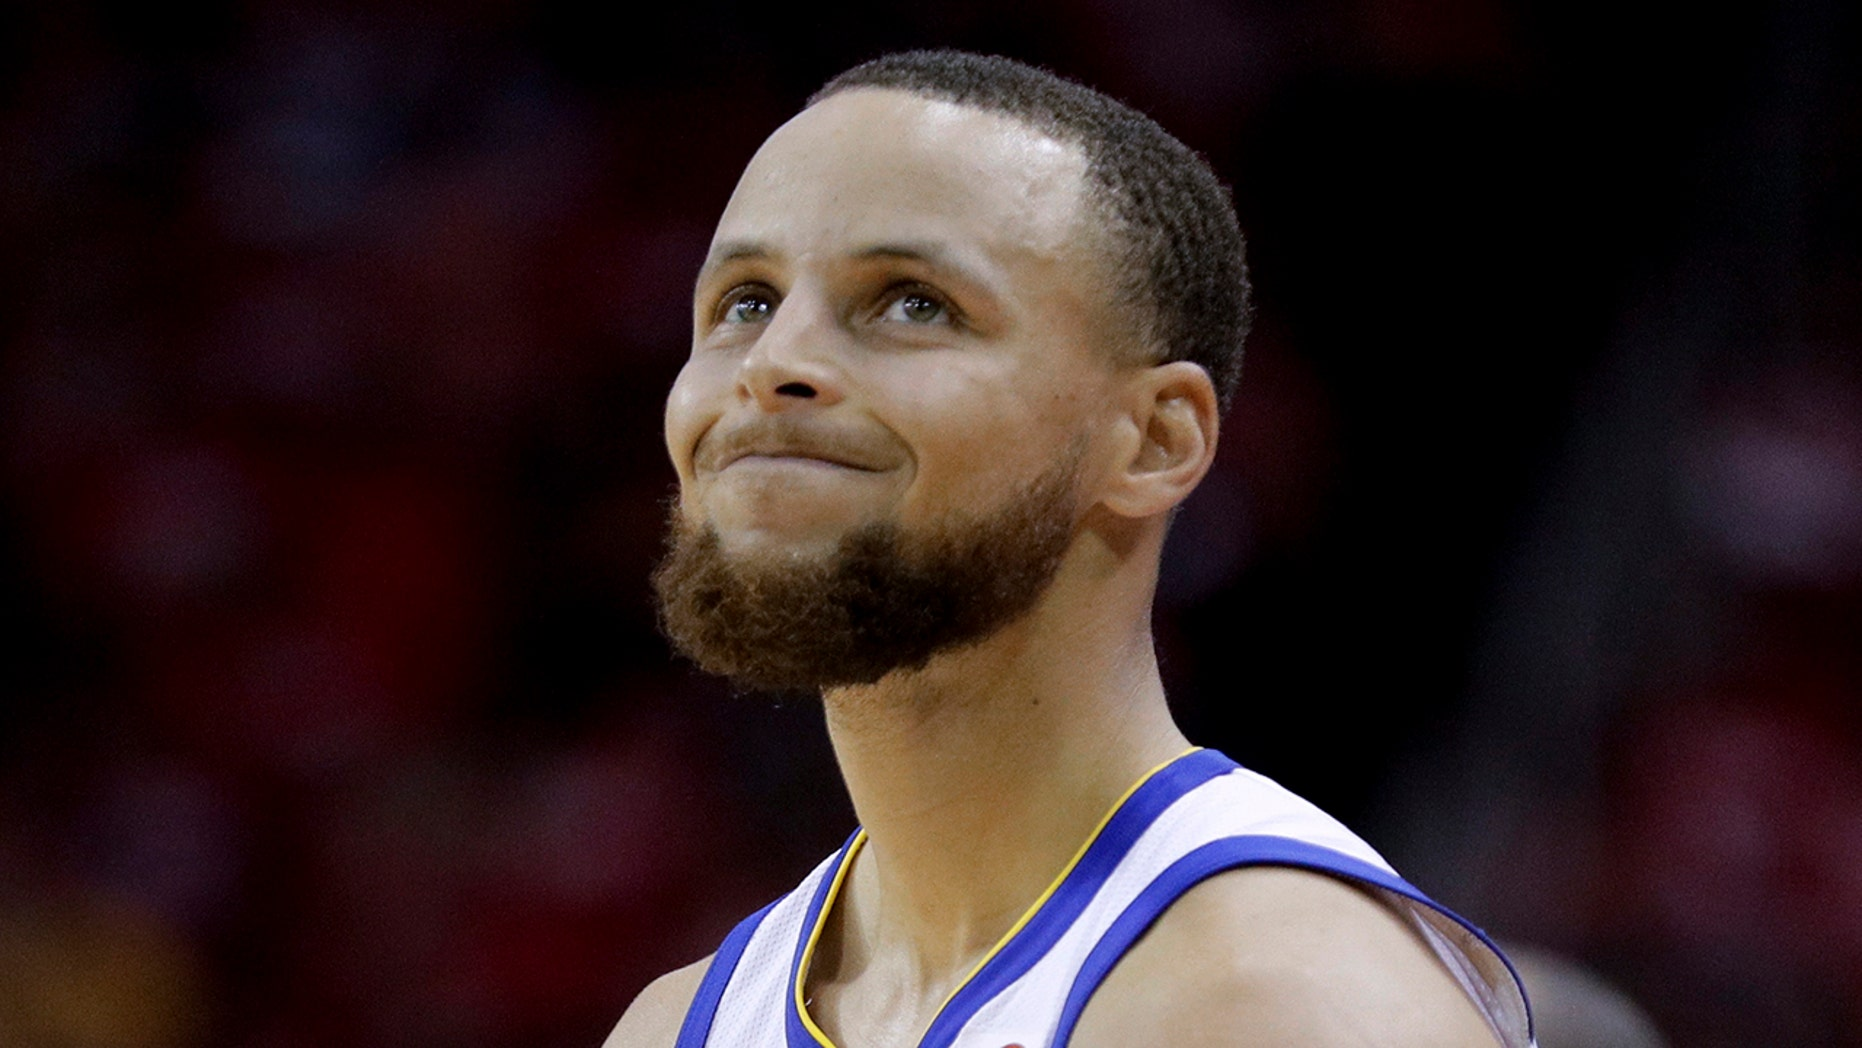 Golden State Warriors guard Stephen Curry reacts after getting called for a foul against the Houston Rockets in Game 5 of the NBA Western Conference finals in Houston, May 24, 2018.